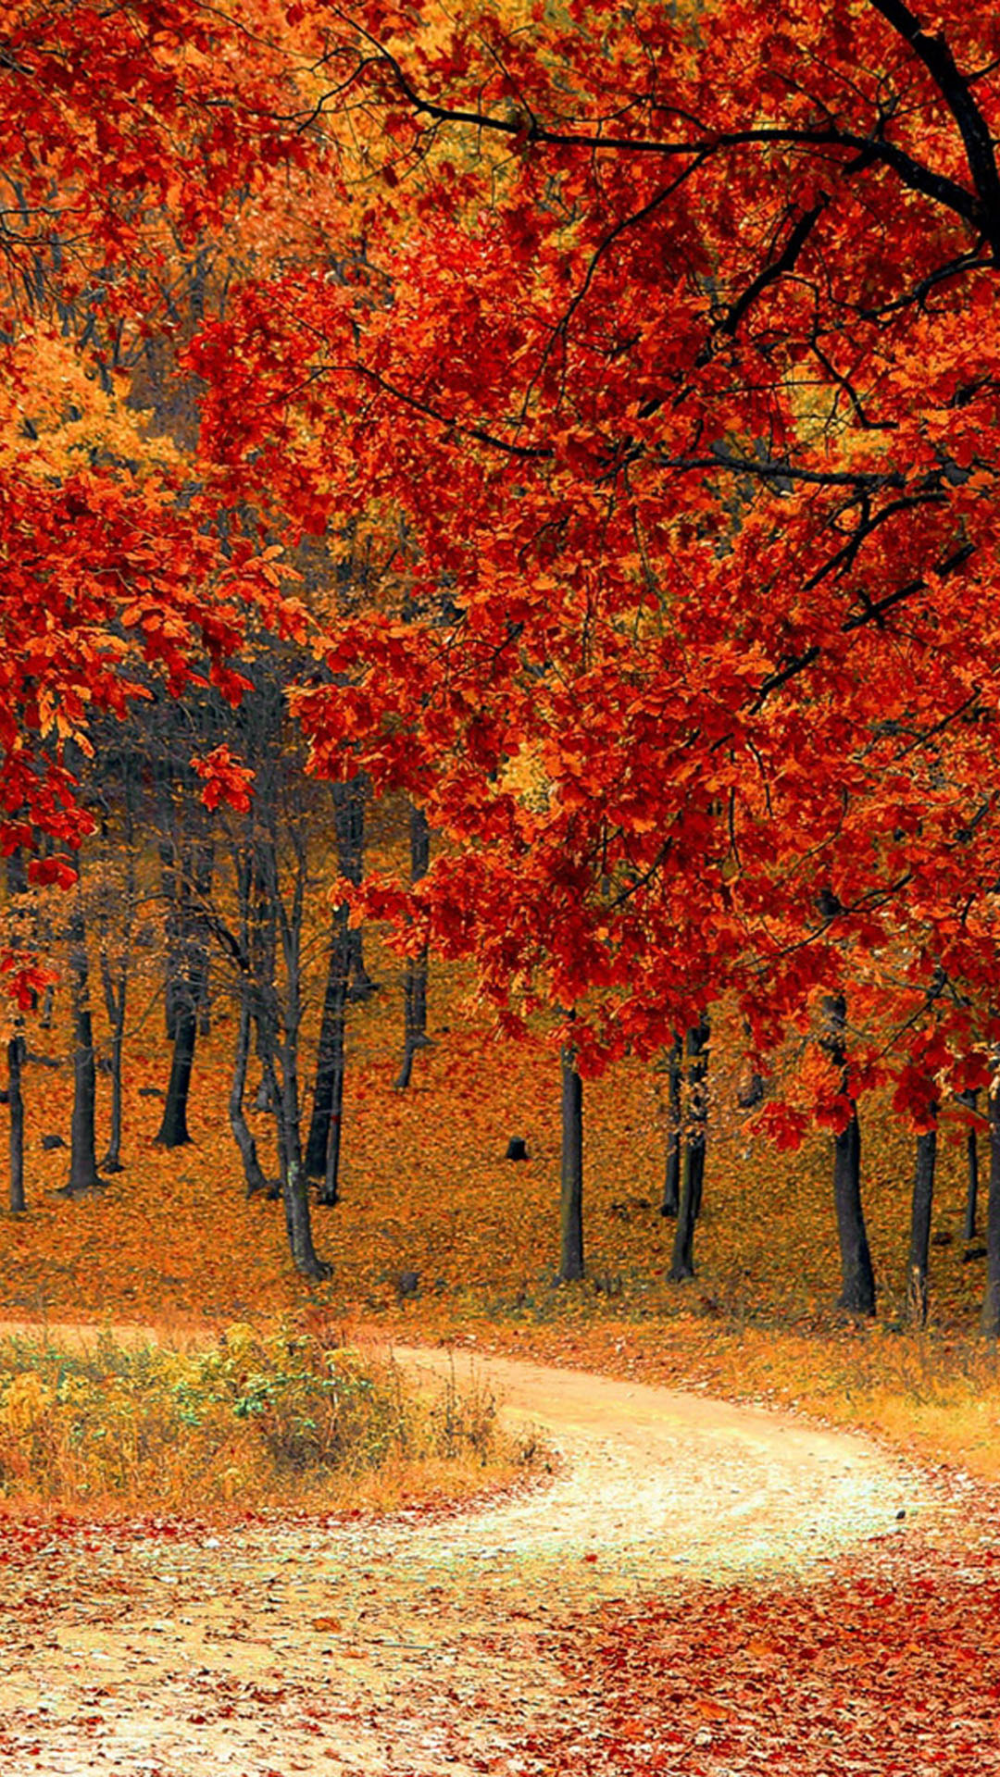 Beautiful Autumn Road Trees 4k Ultra Hd Mobile Wallpaper In 2020 Fall Facebook Cover Photos Fall Wallpaper Fall Facebook Cover